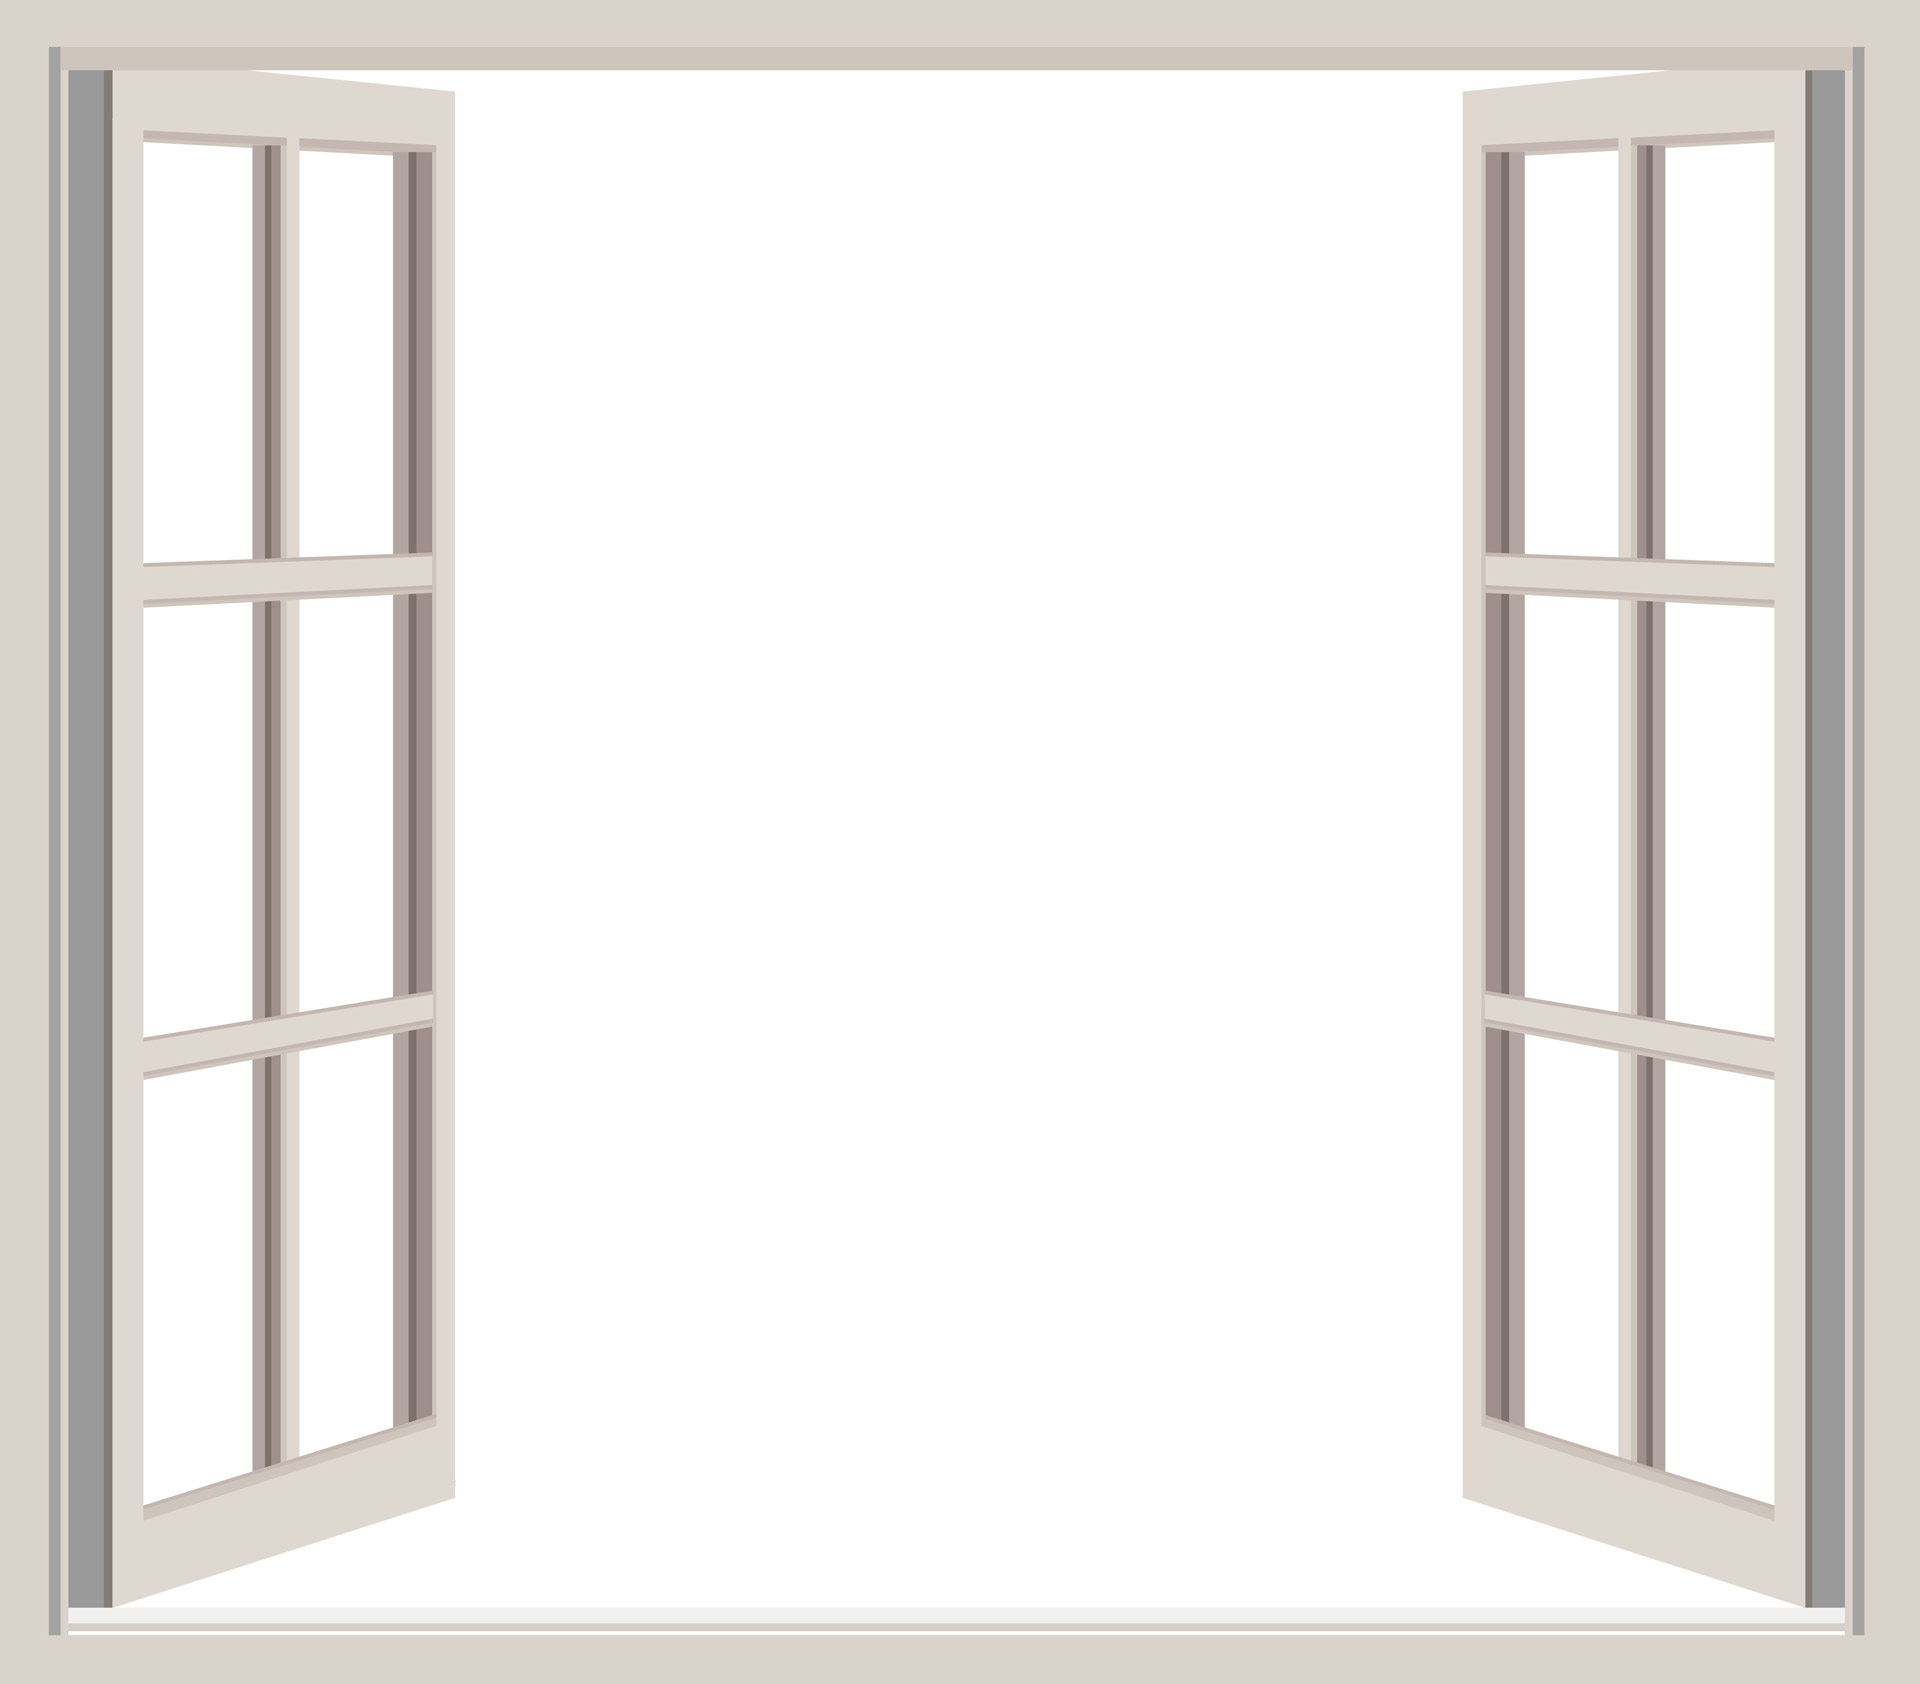 Open window frame clipart free stock photo public domain.